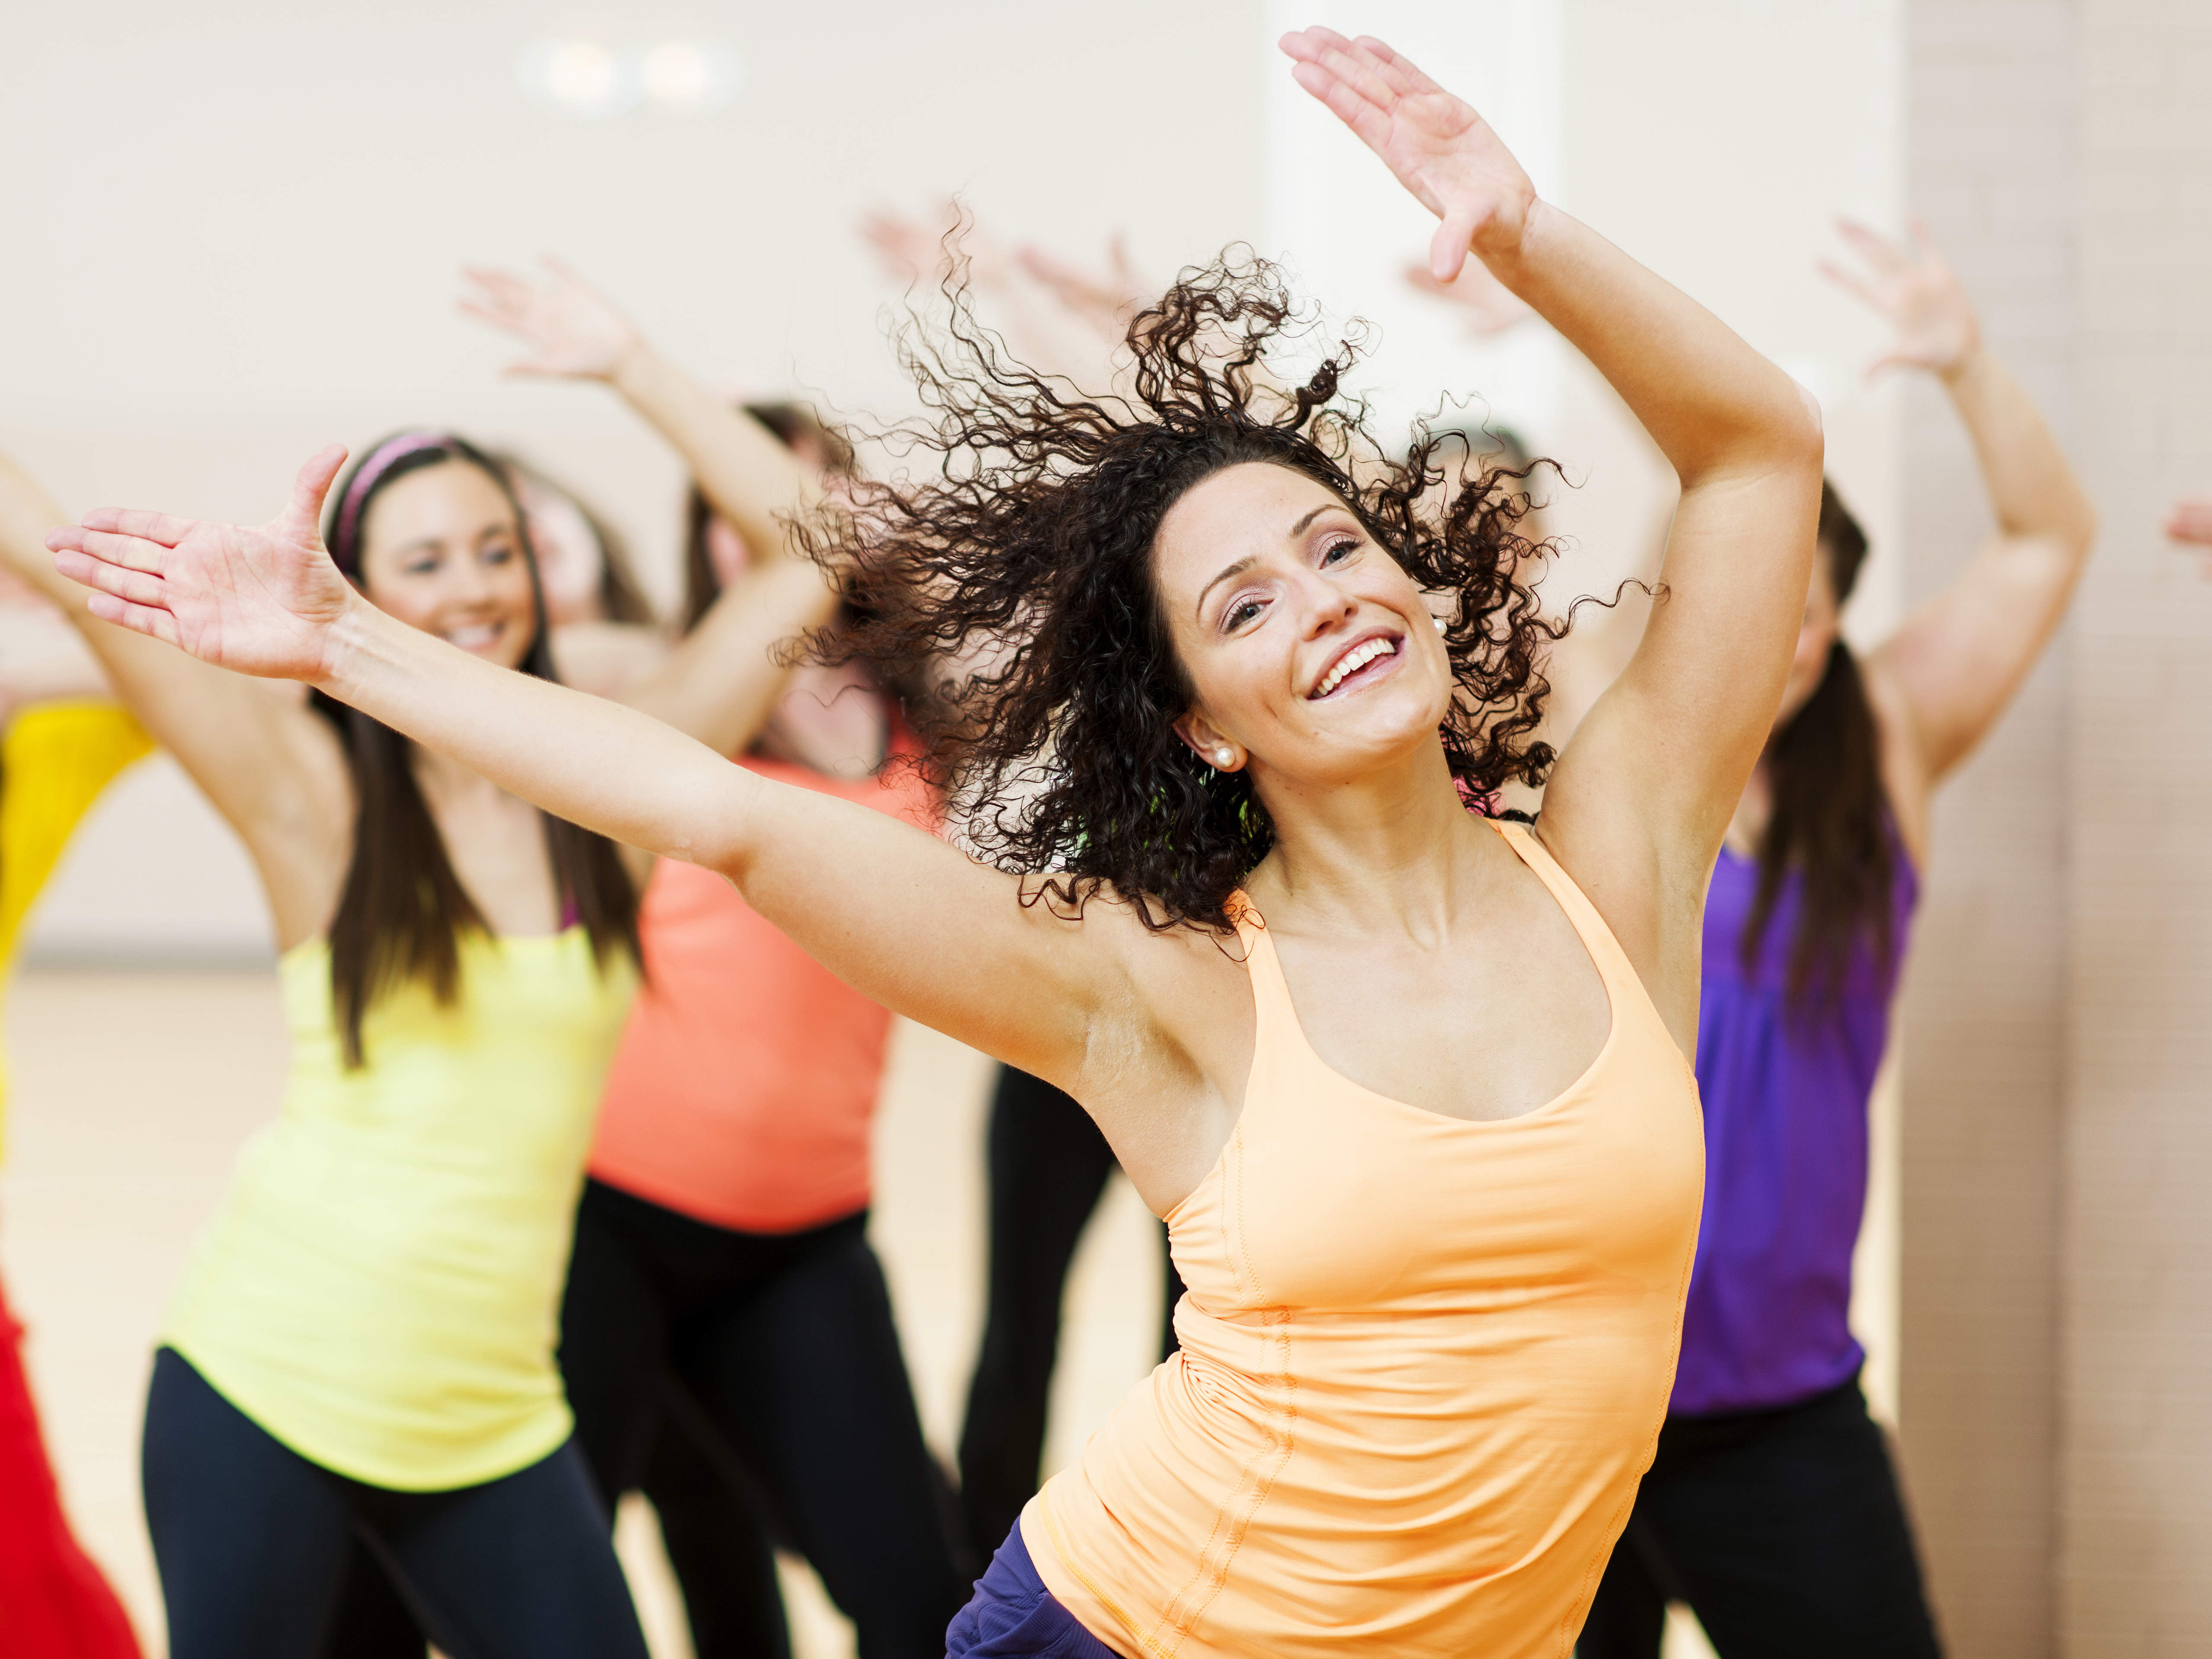 Try the Dance Cardio Workout That Inspired Zumba - Health